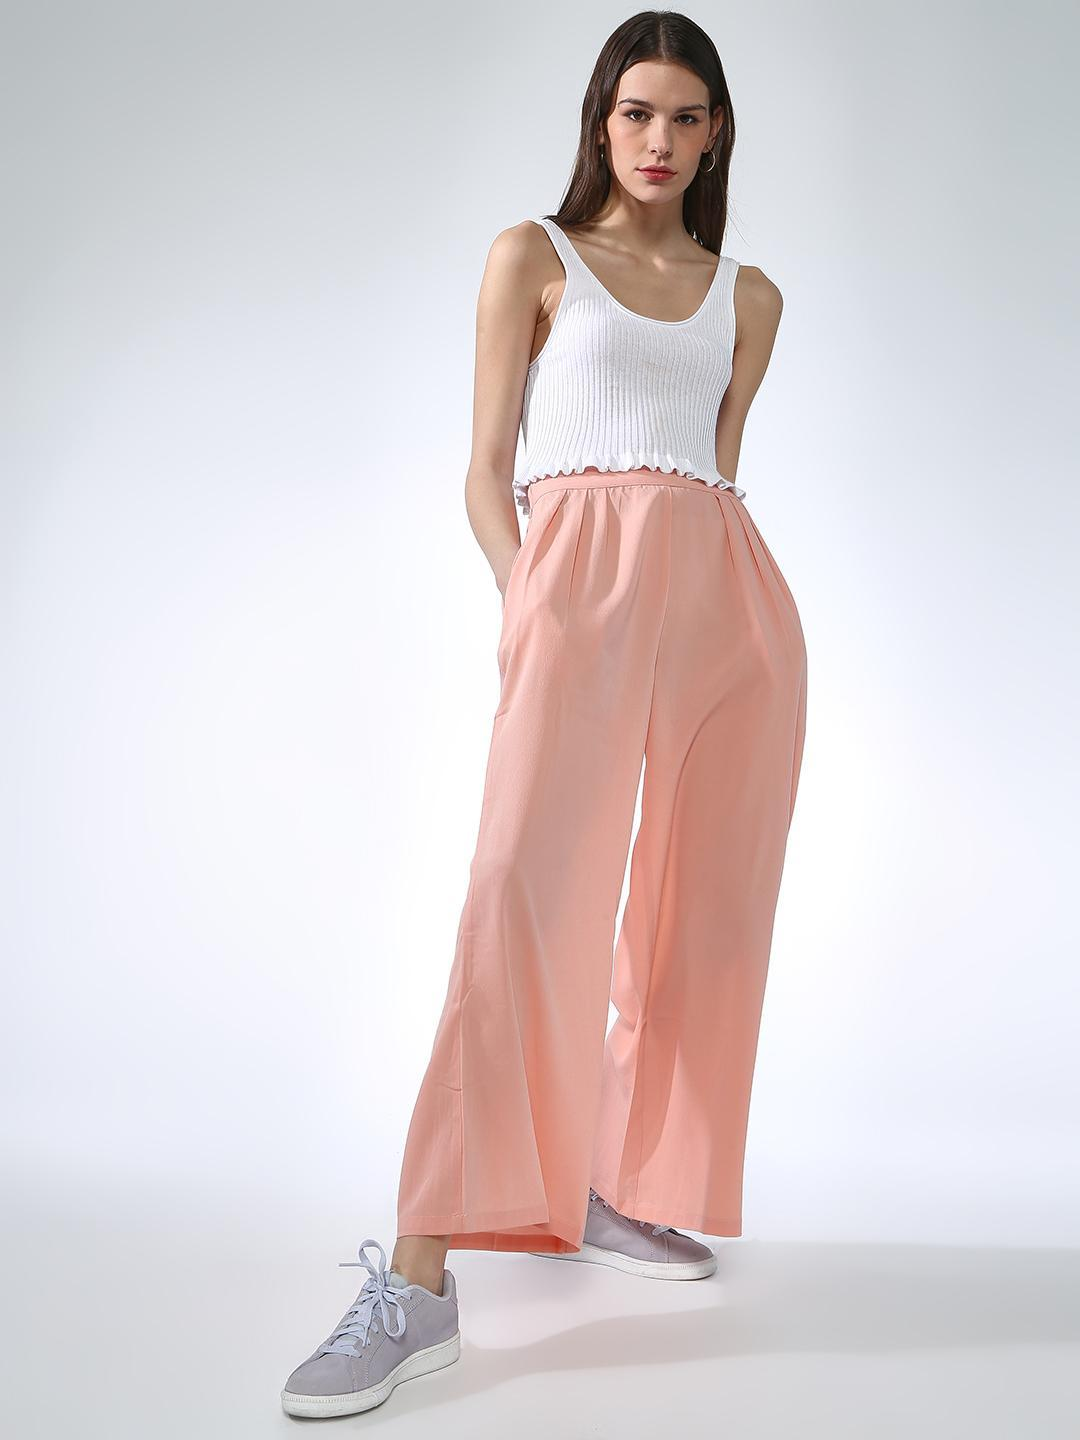 Oxolloxo Pink Regular Fit Flare Pant 1